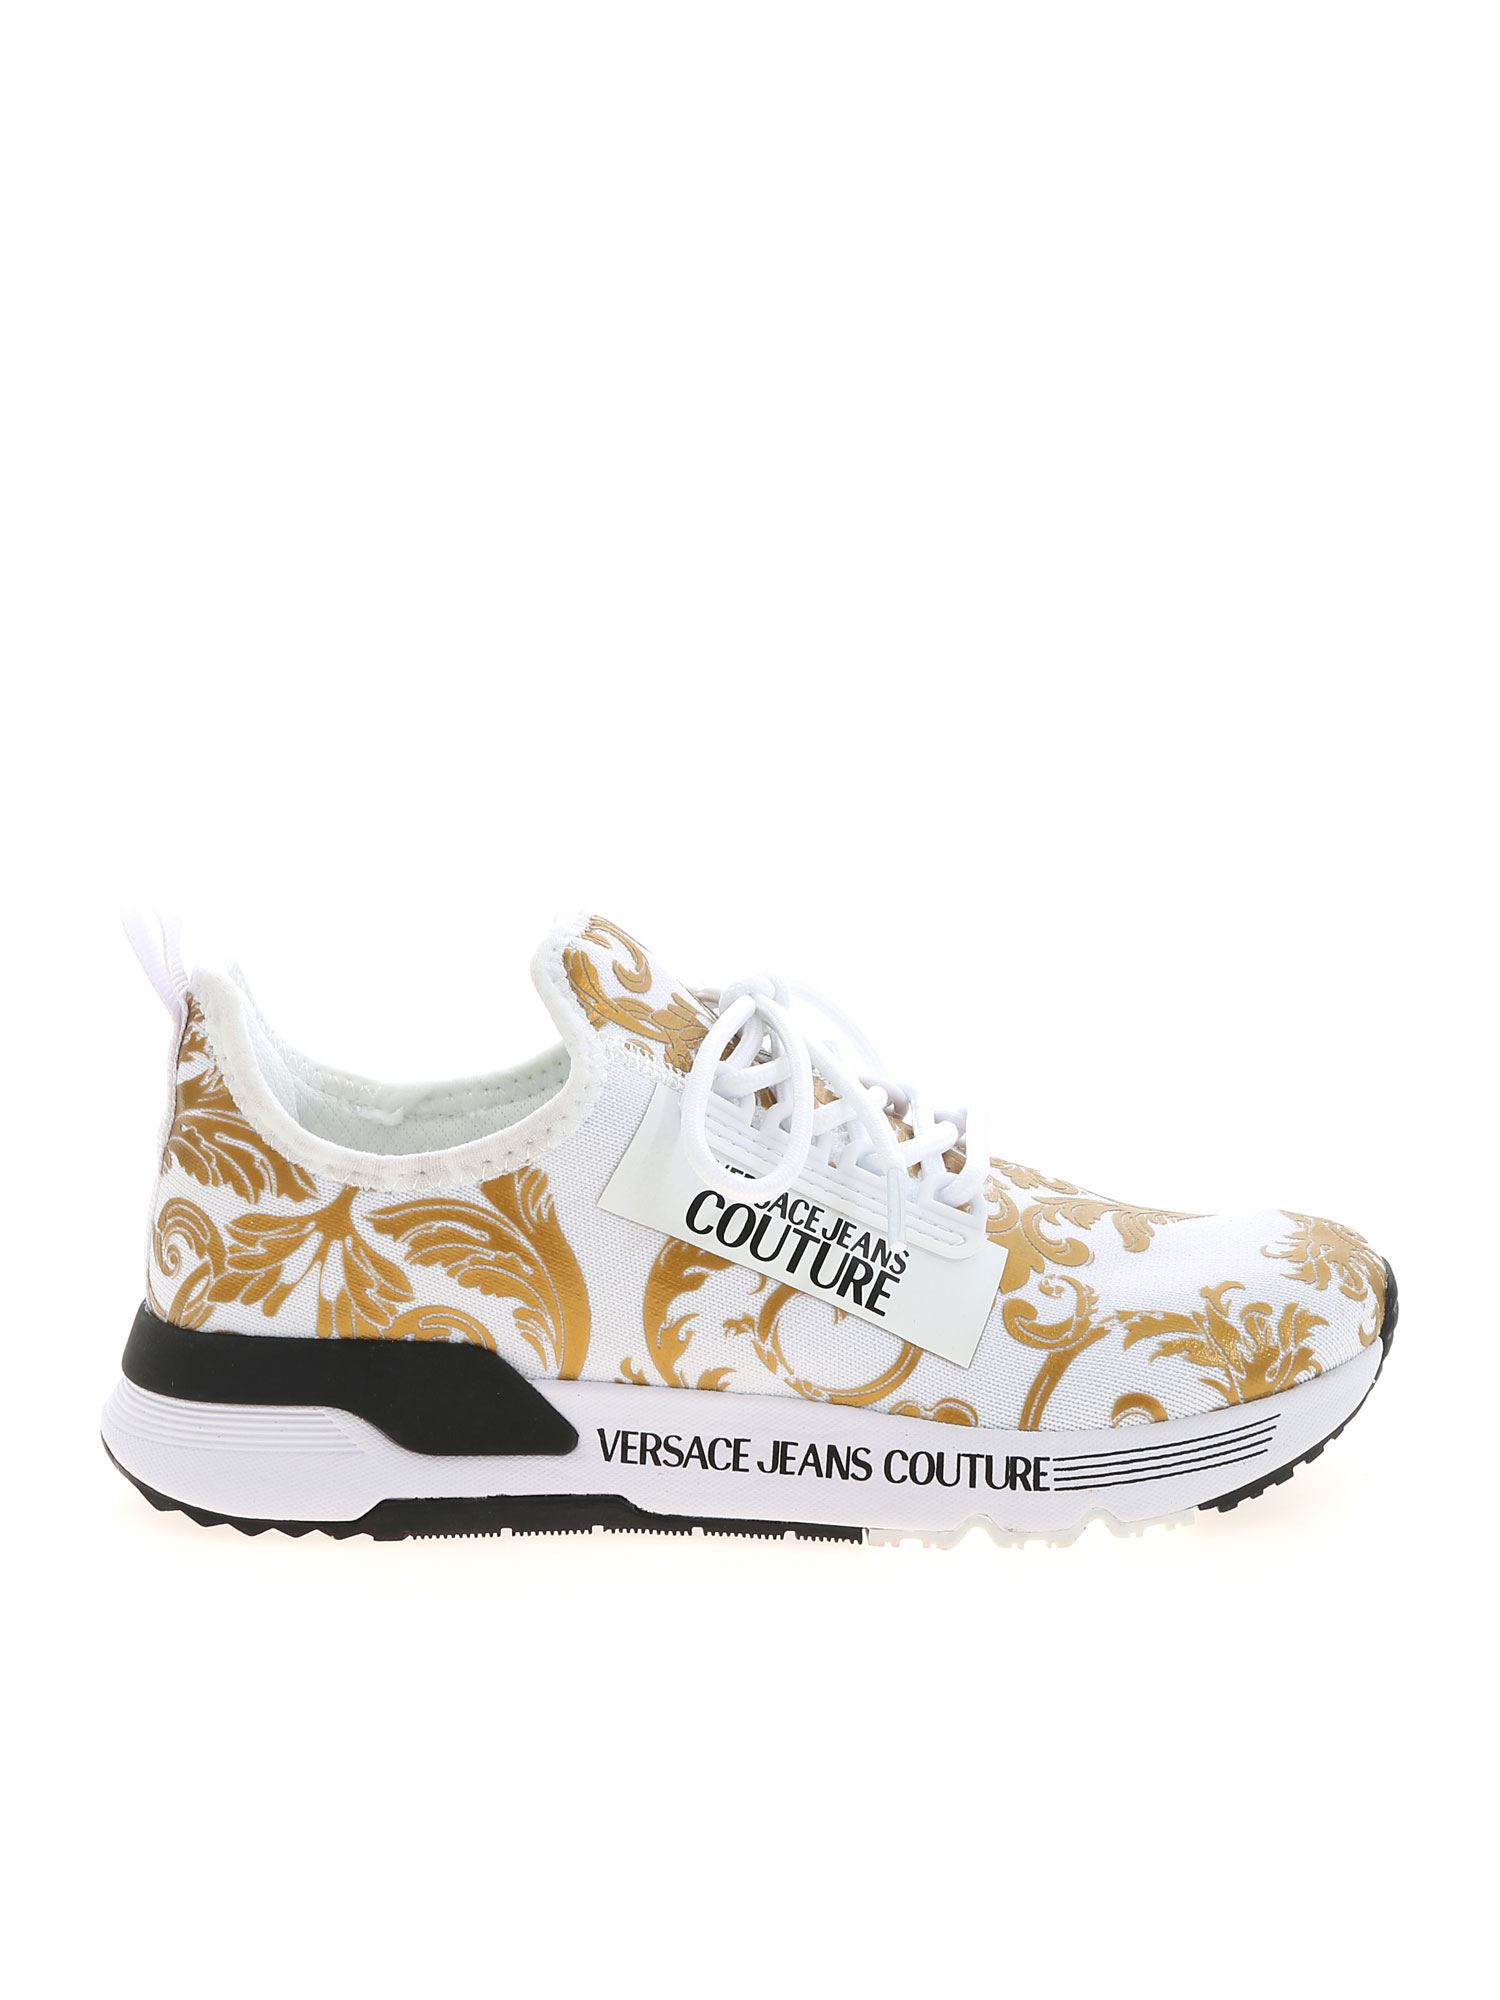 Versace Jeans Couture BAROQUE LOGO SNEAKERS IN WHITE